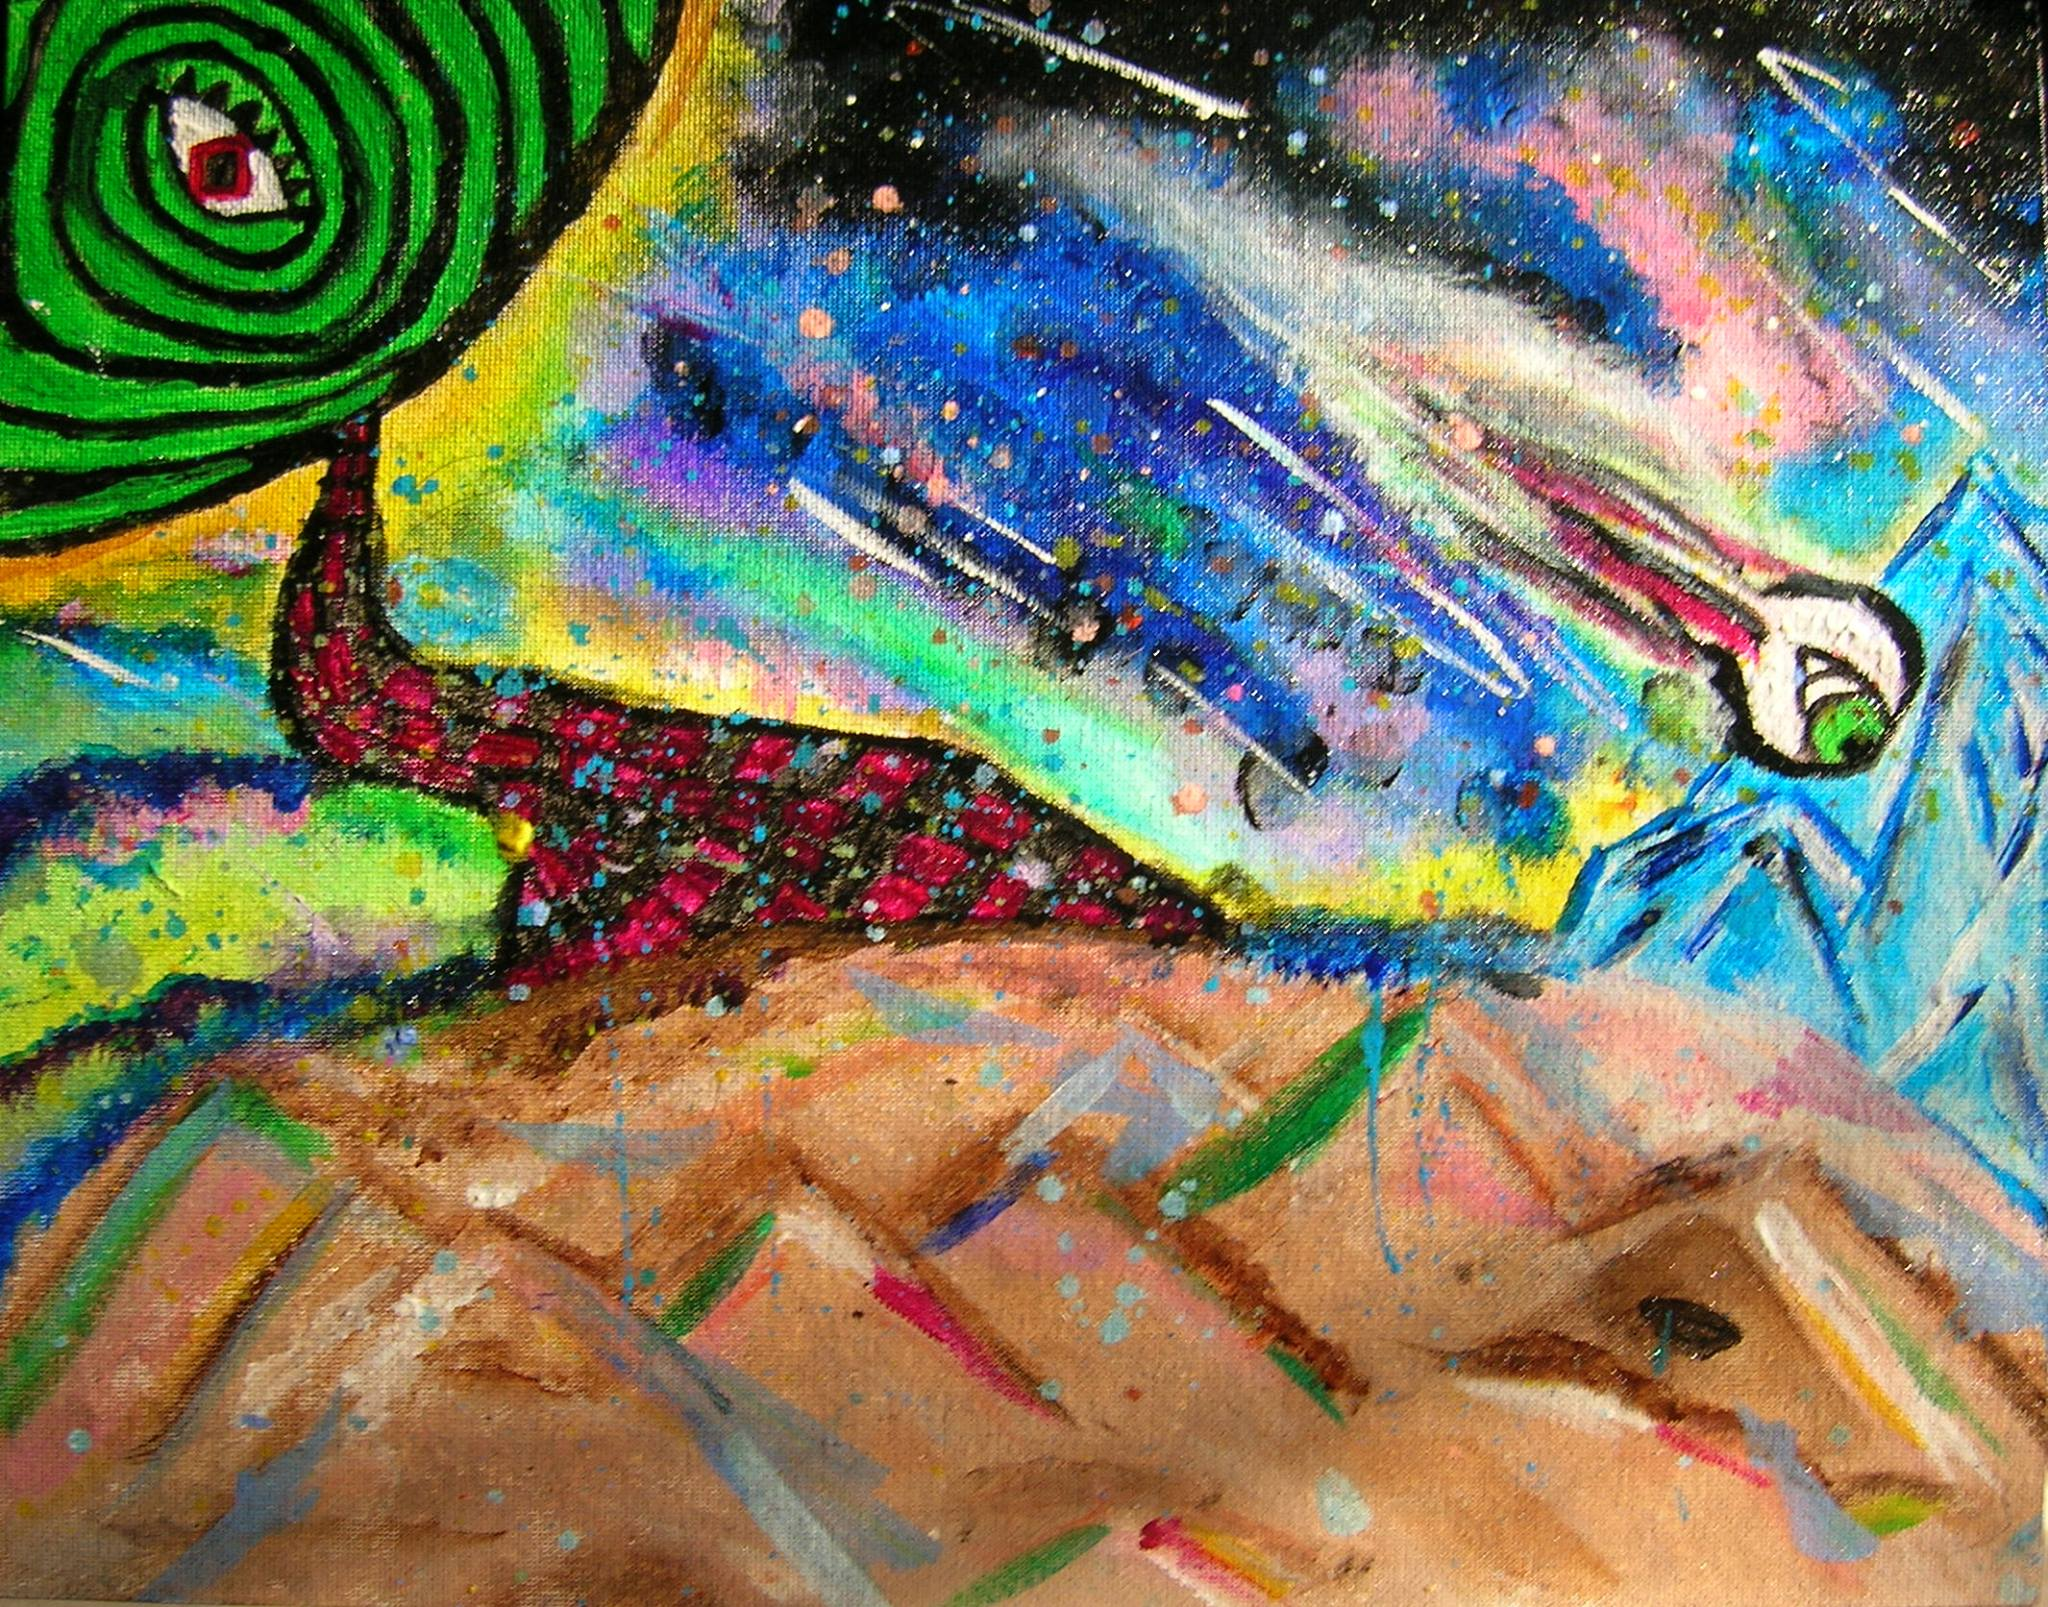 Peaking into Other Worldly Cosmos (ORIGINAL SOLD)